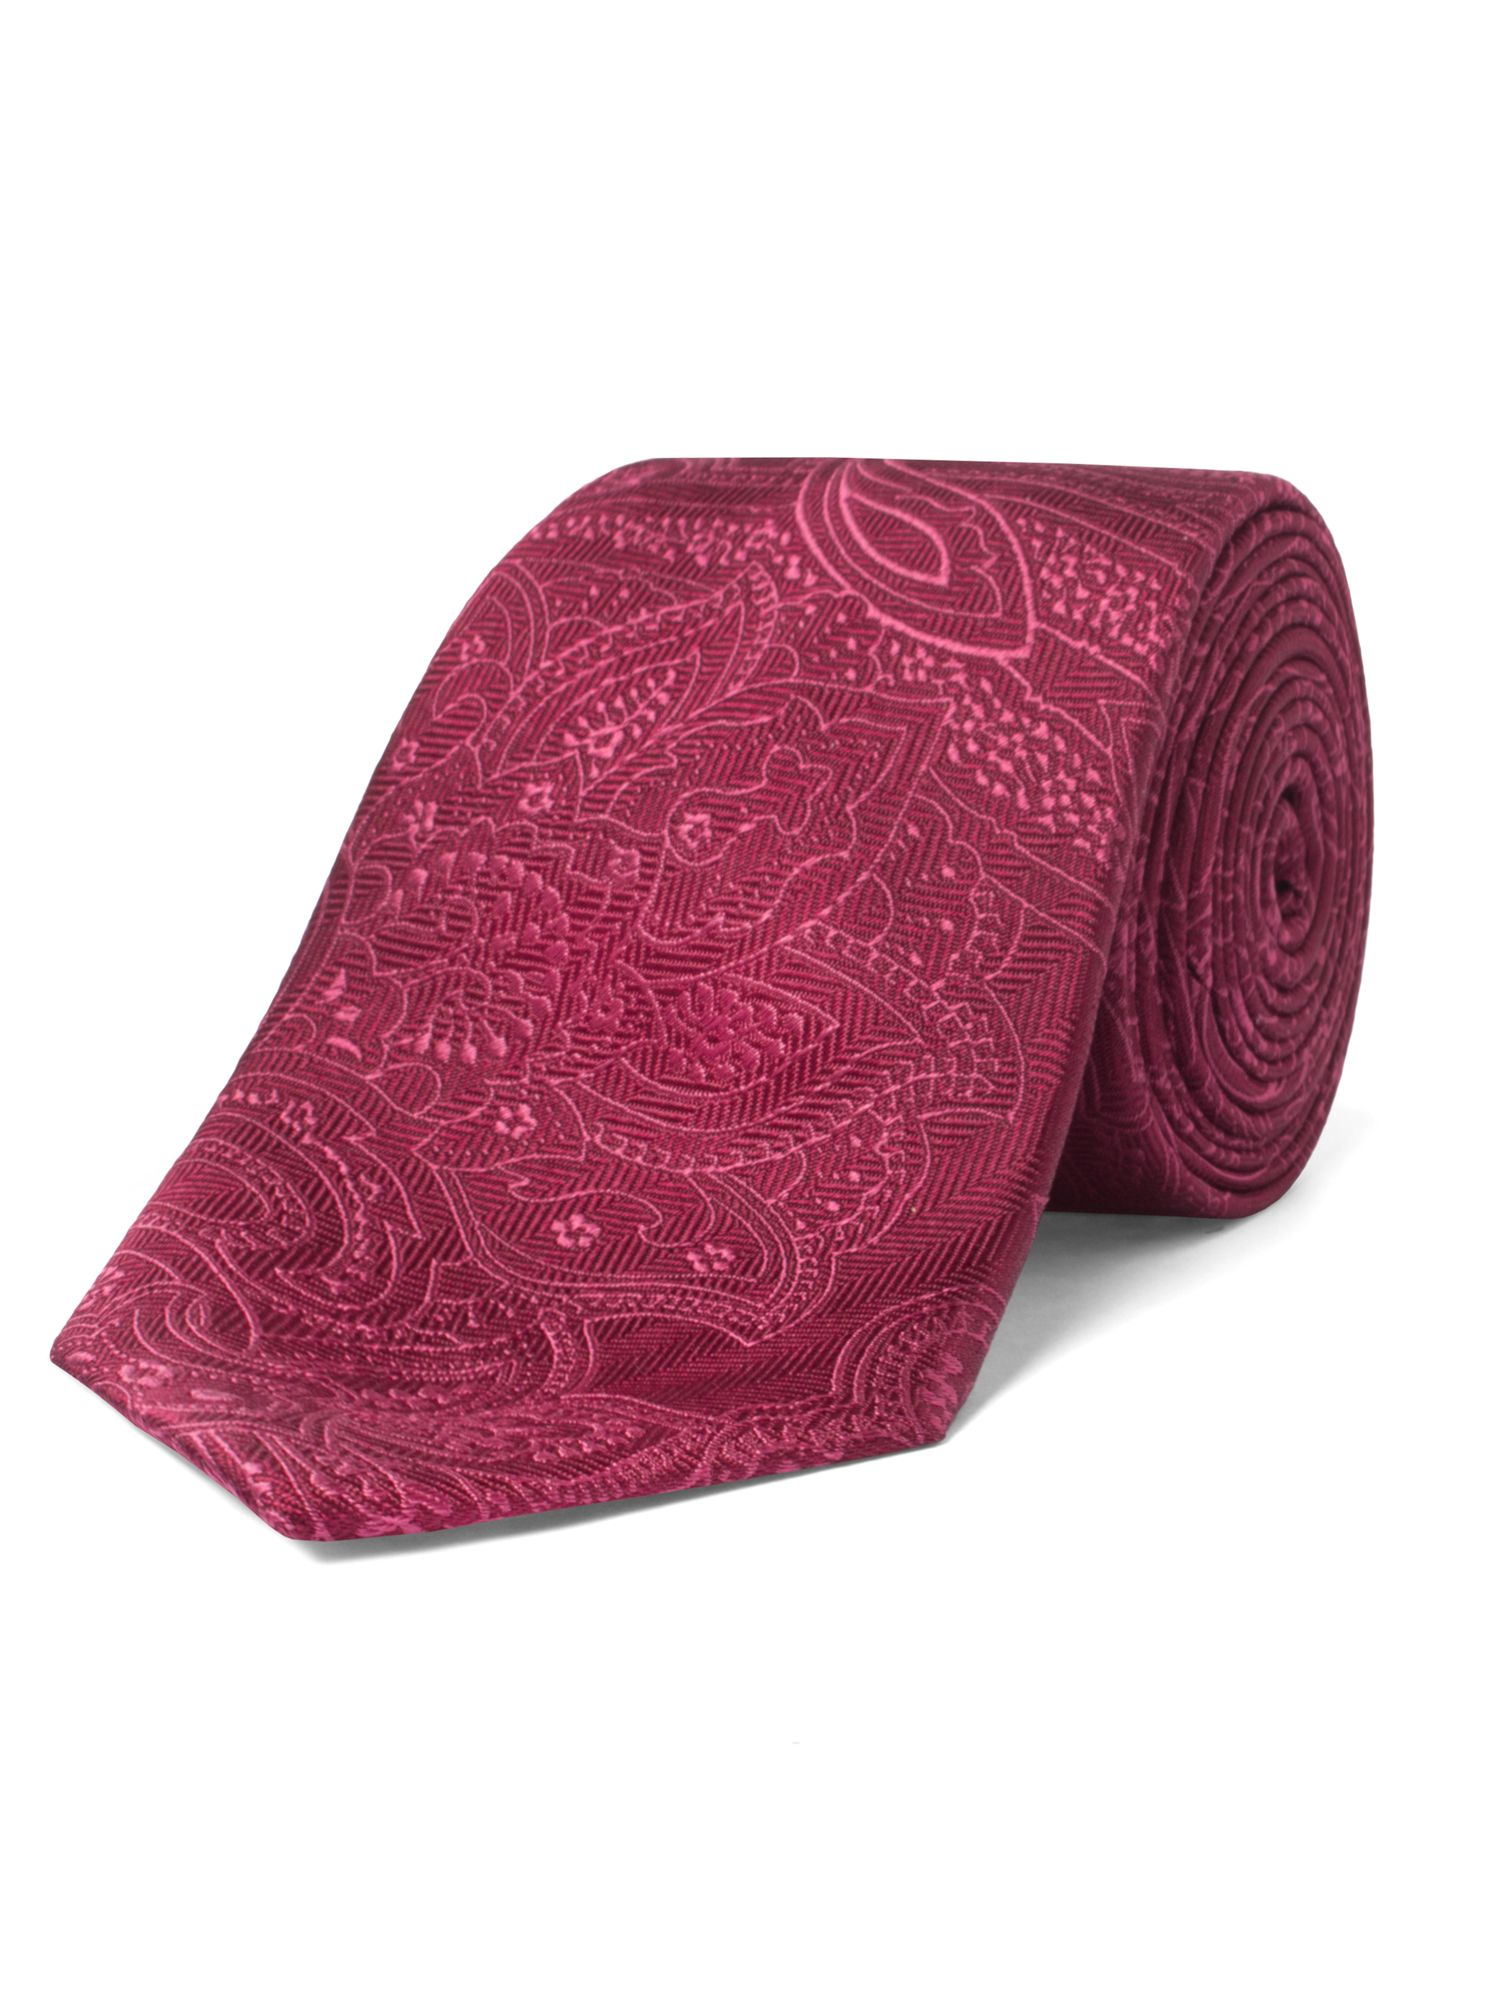 Alexandre of England Alexandre of England Calmore Red Paisley Tie, Red